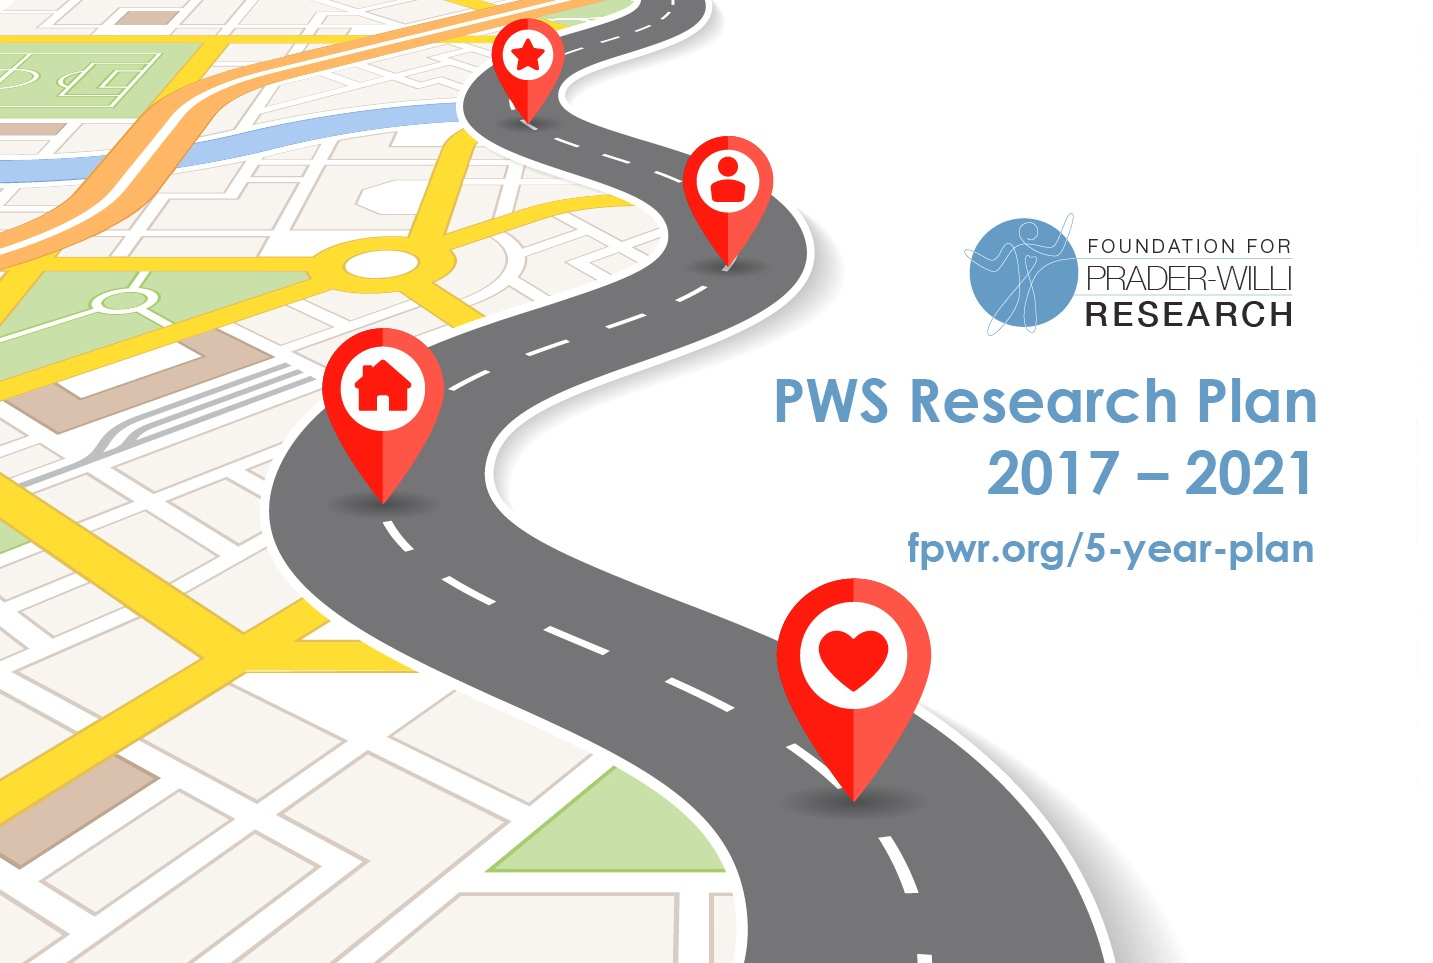 roadmap-for-the-future-the-pws-research-plan-2017-2021-a.jpg